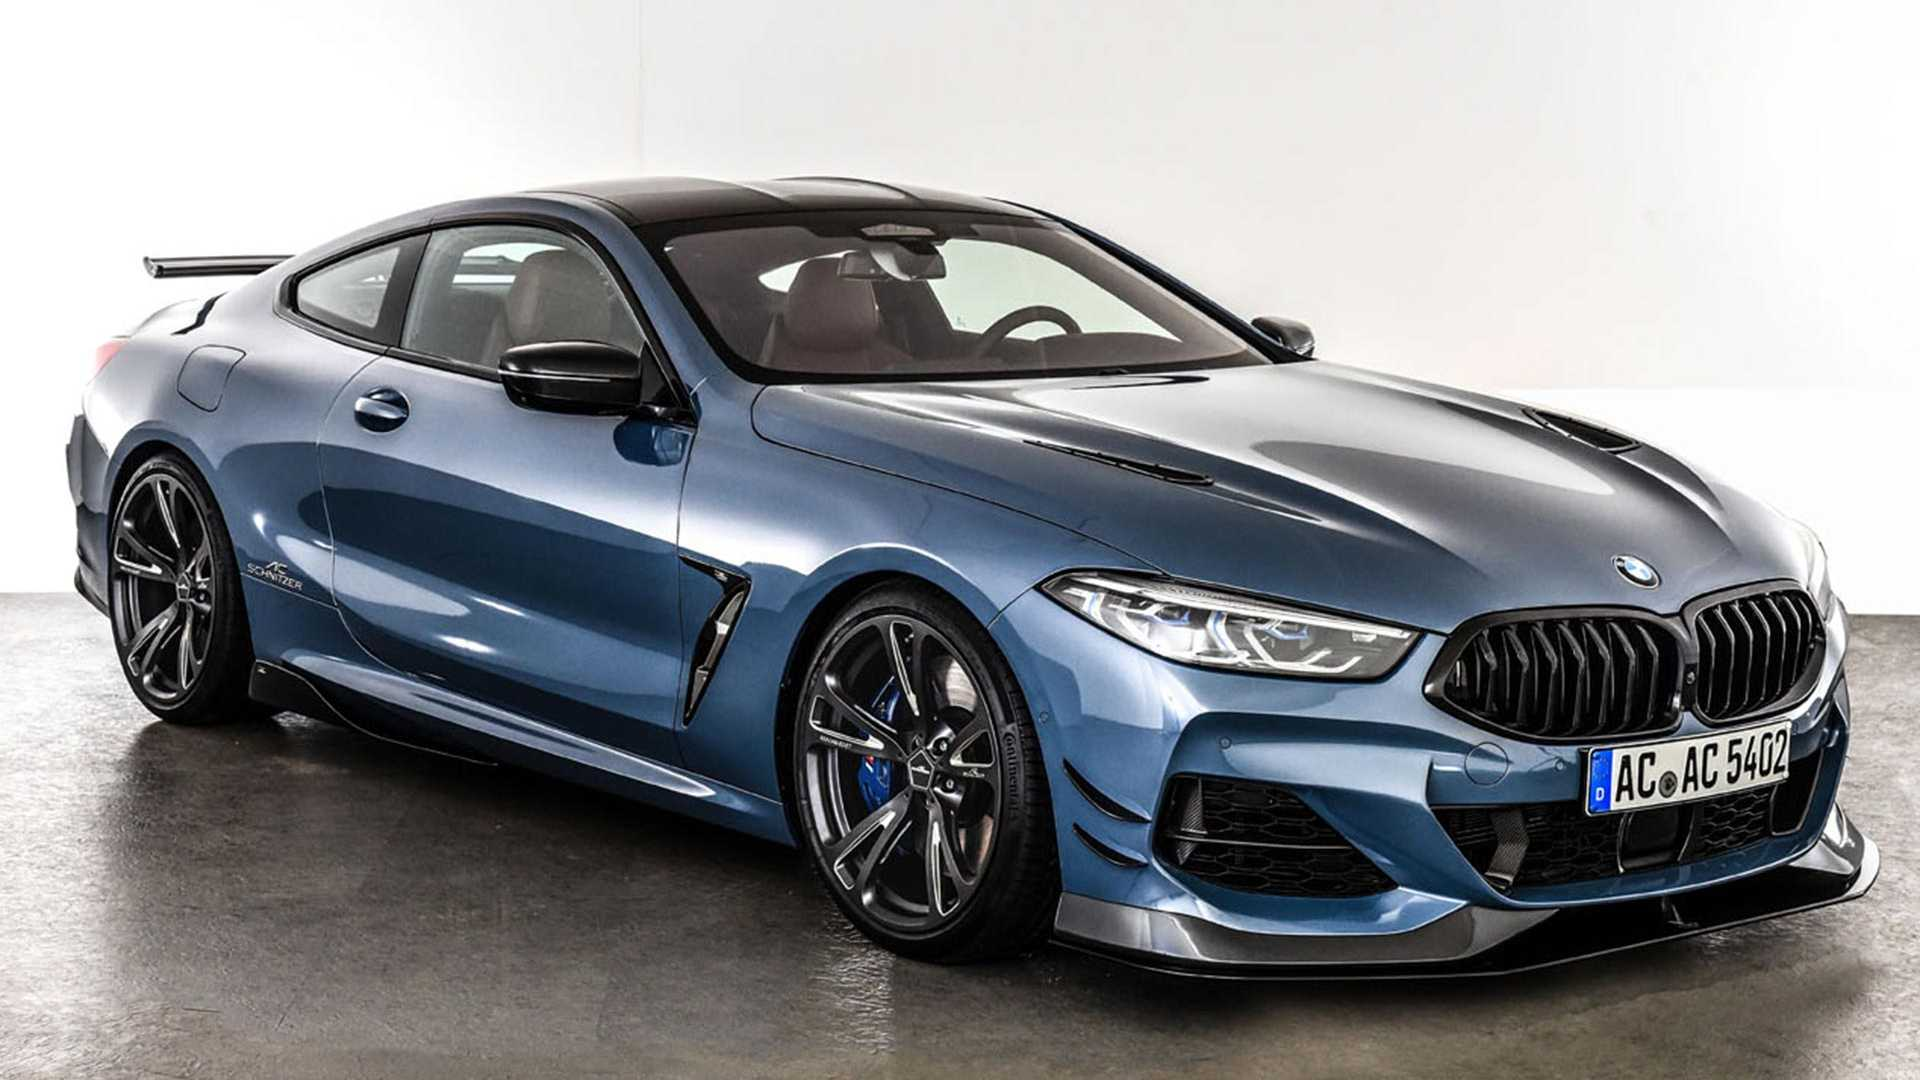 Bmw 8 Series Coupe Gets Aggressive Design From Ac Schnitzer